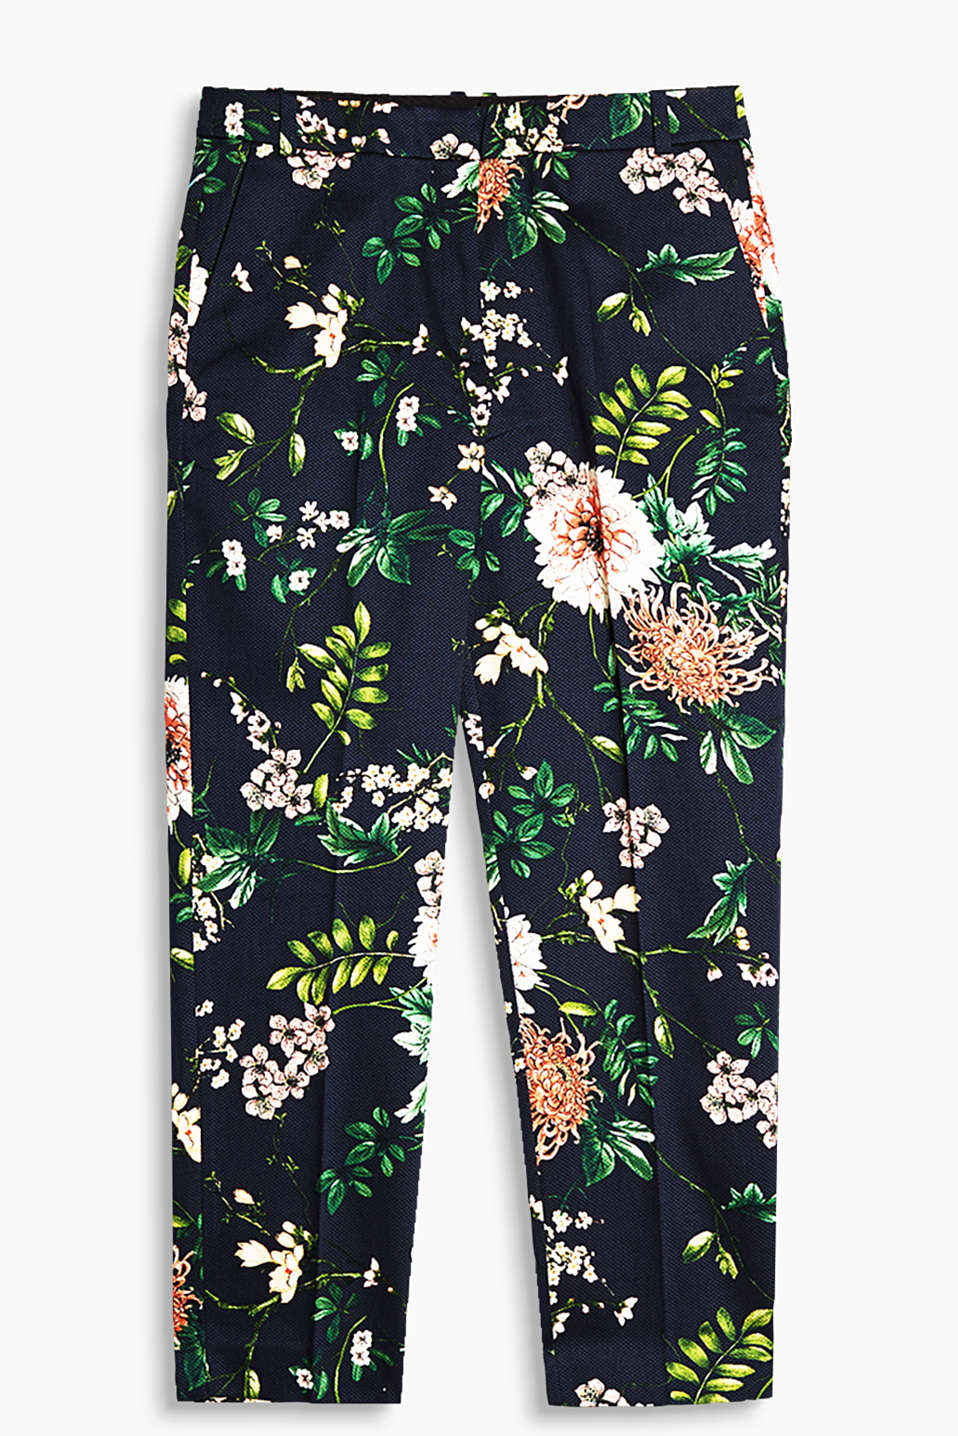 Cropped cotton trousers in a piqué look with a large floral print